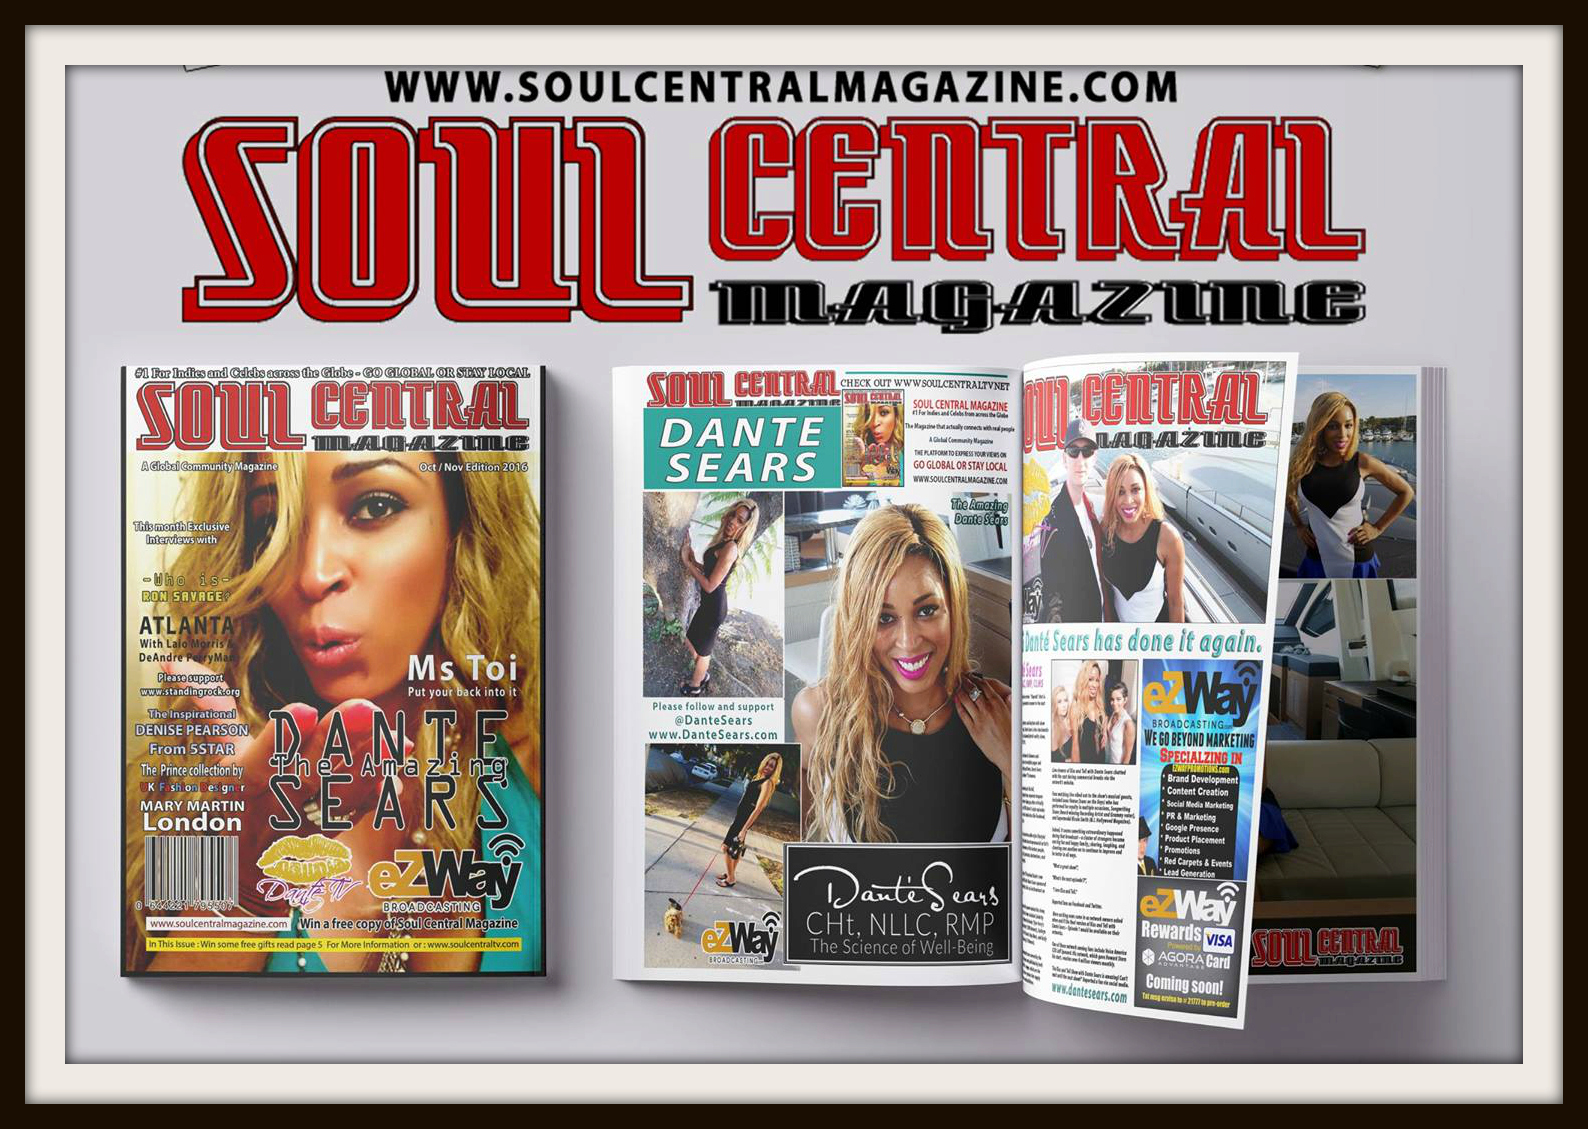 Soul Central Magazine Honors Dante Sears on its Cover